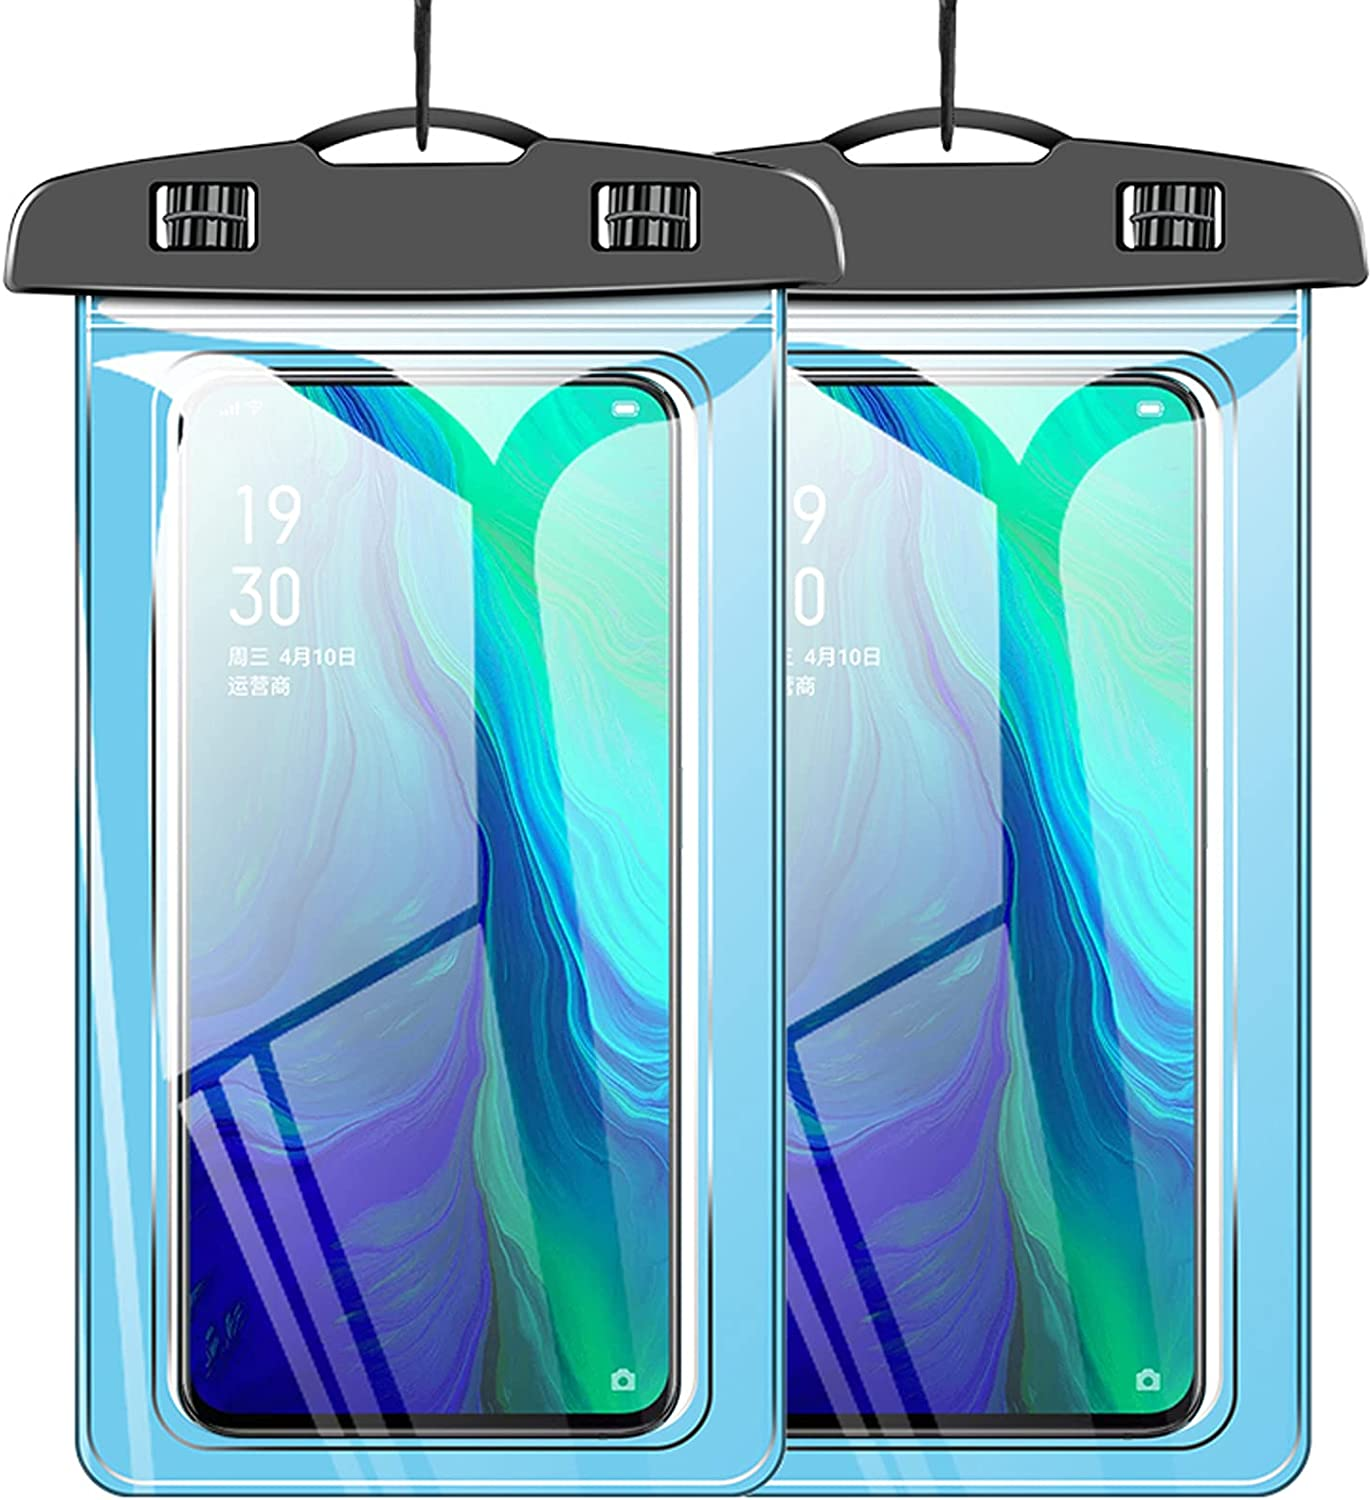 Eiles [2-Pack] Large Waterproof Cell Phone Pouch, Universal Waterproof Phone case, Dry Bag Outdoor Beach Bag for iPhone 12 11 Pro Max XSMax XR XS 8 7 Plus/Samsung Galaxy/LG/Oneplus up to 7